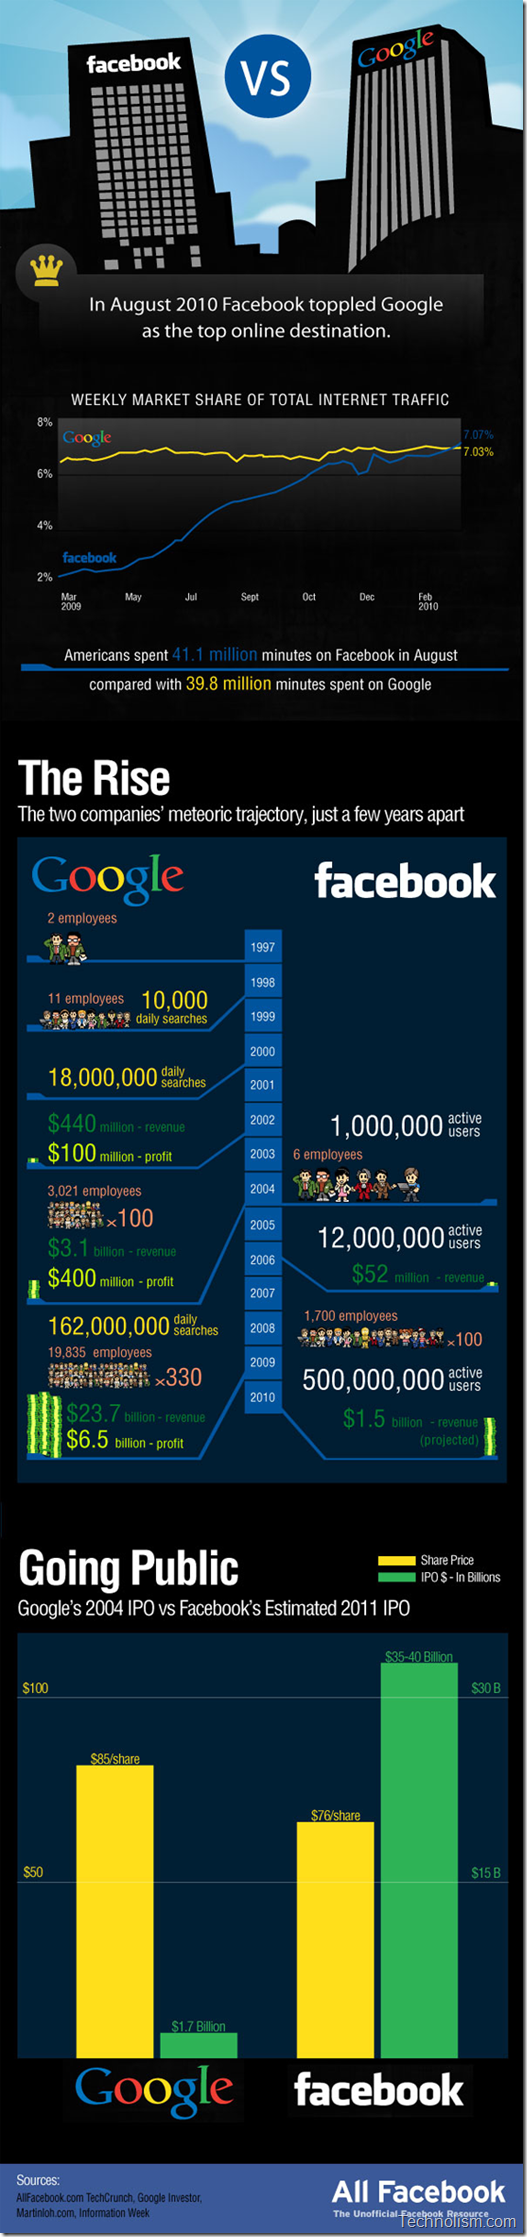 google-vs-facebook-infographic illustration